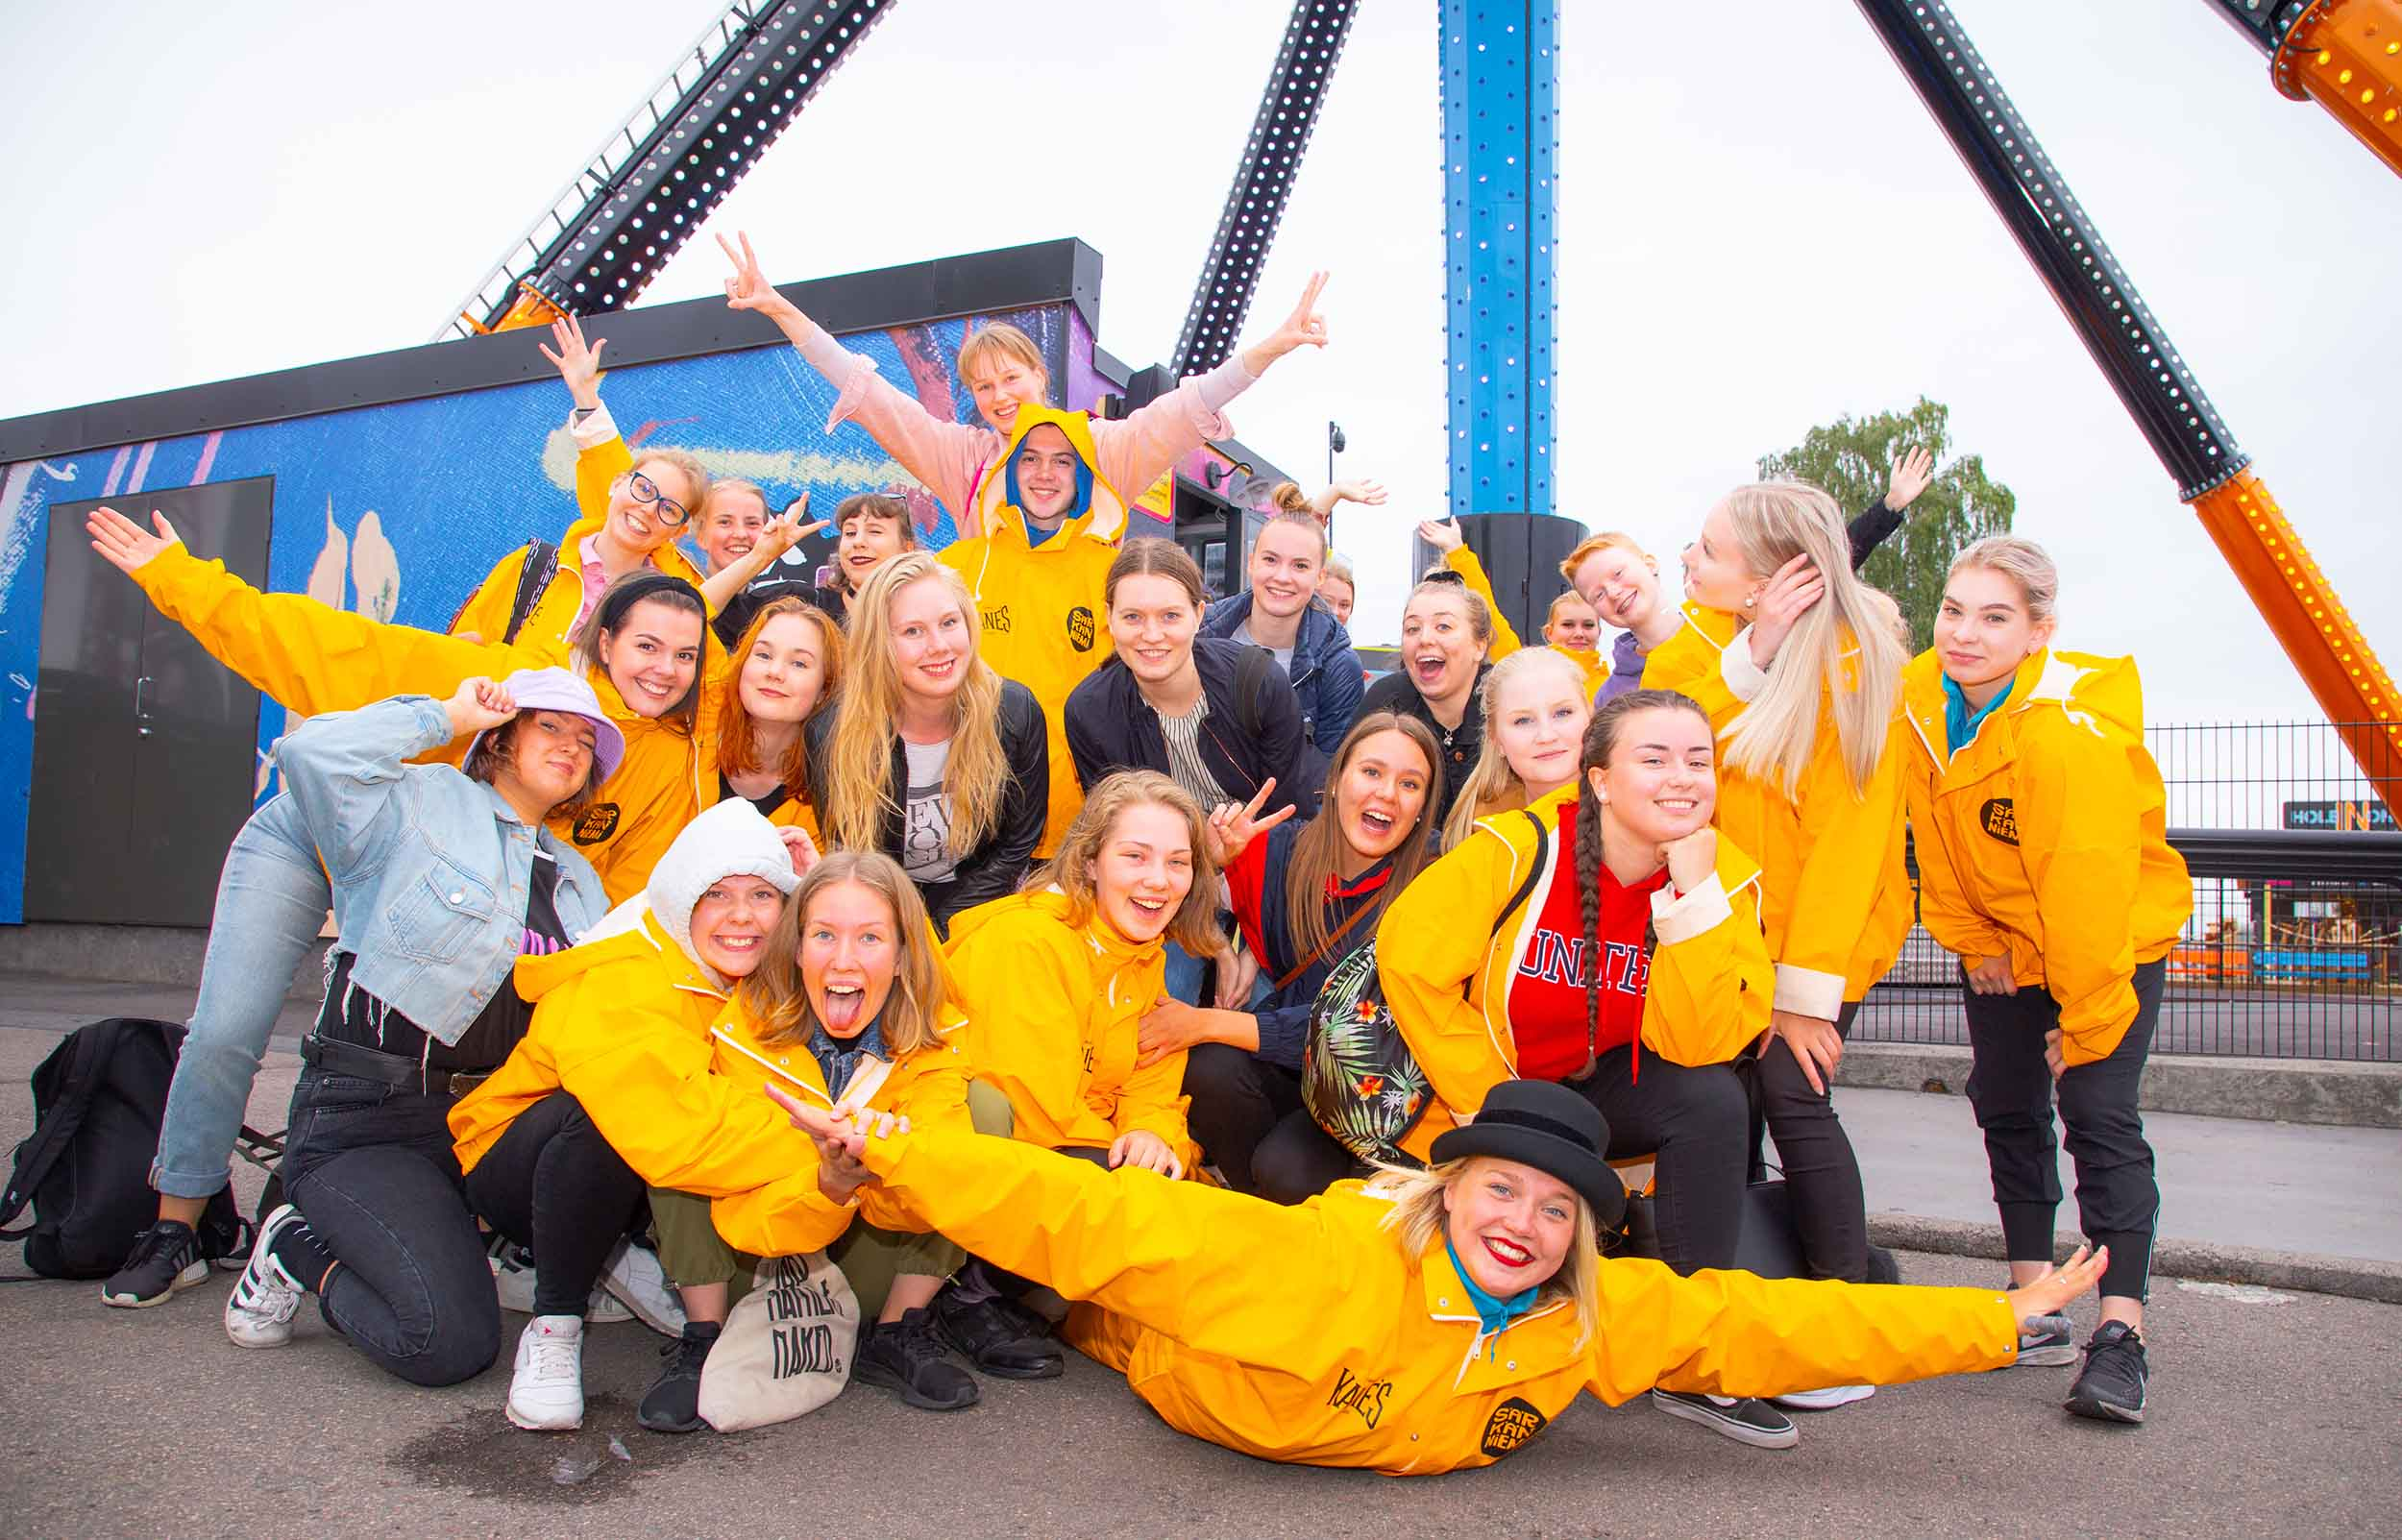 A large group of young women, many of whom are wearing a yellow jacket with the text 'Särkänniemi'. A happy atmosphere. Some have outstretched arms.